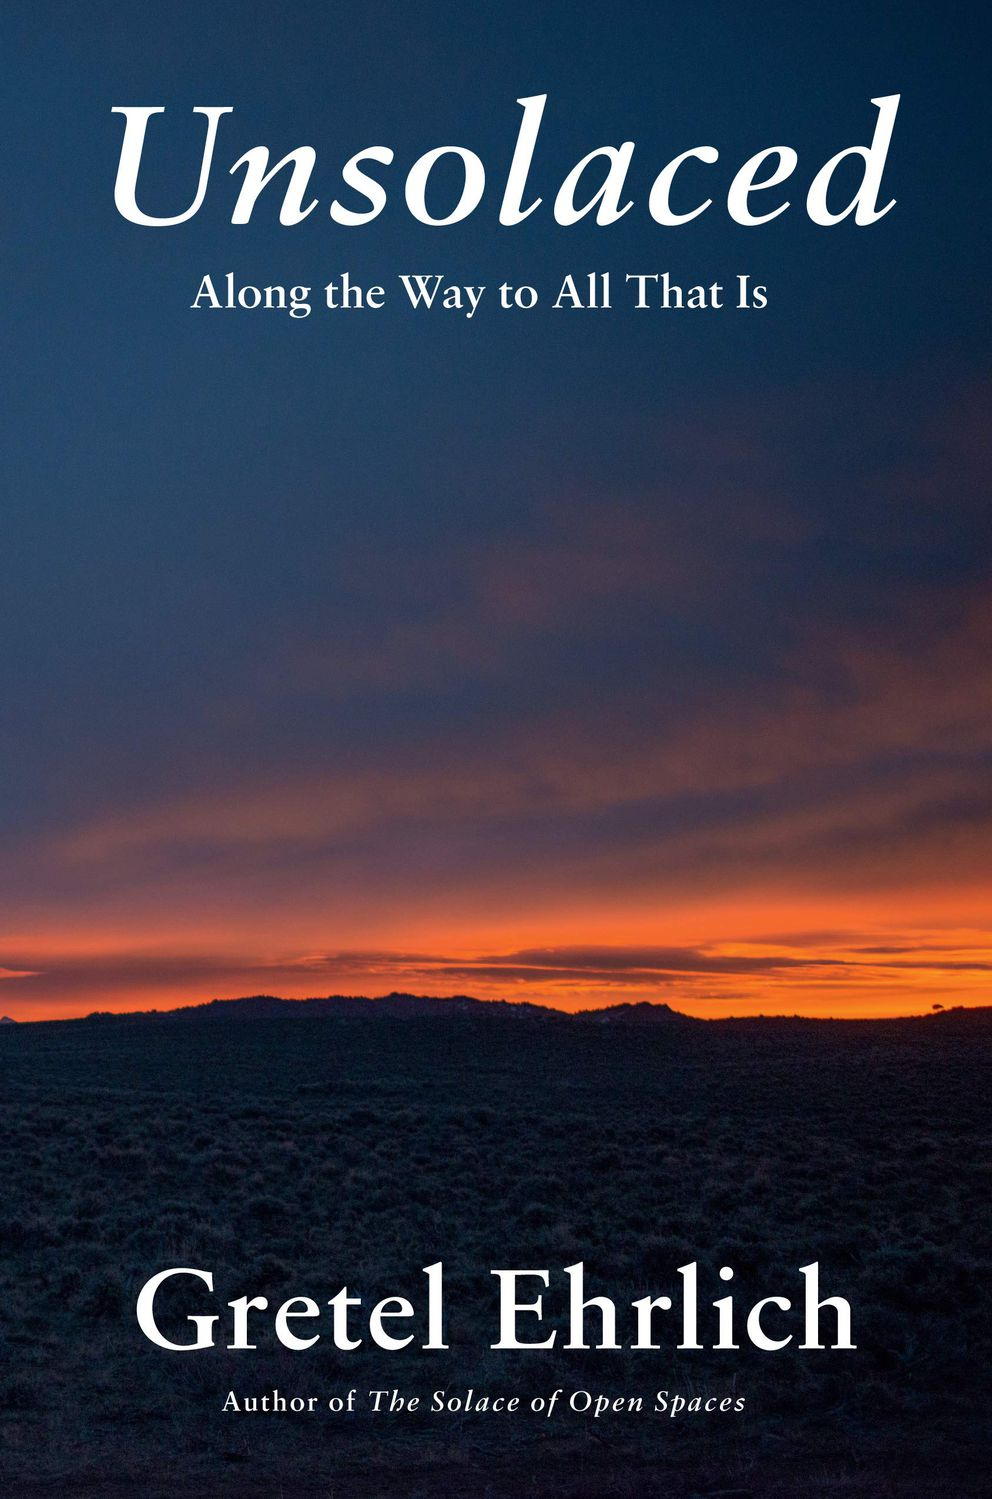 'Unsolaced: Along the Way to All That Is, ' by Gretel Ehrlich